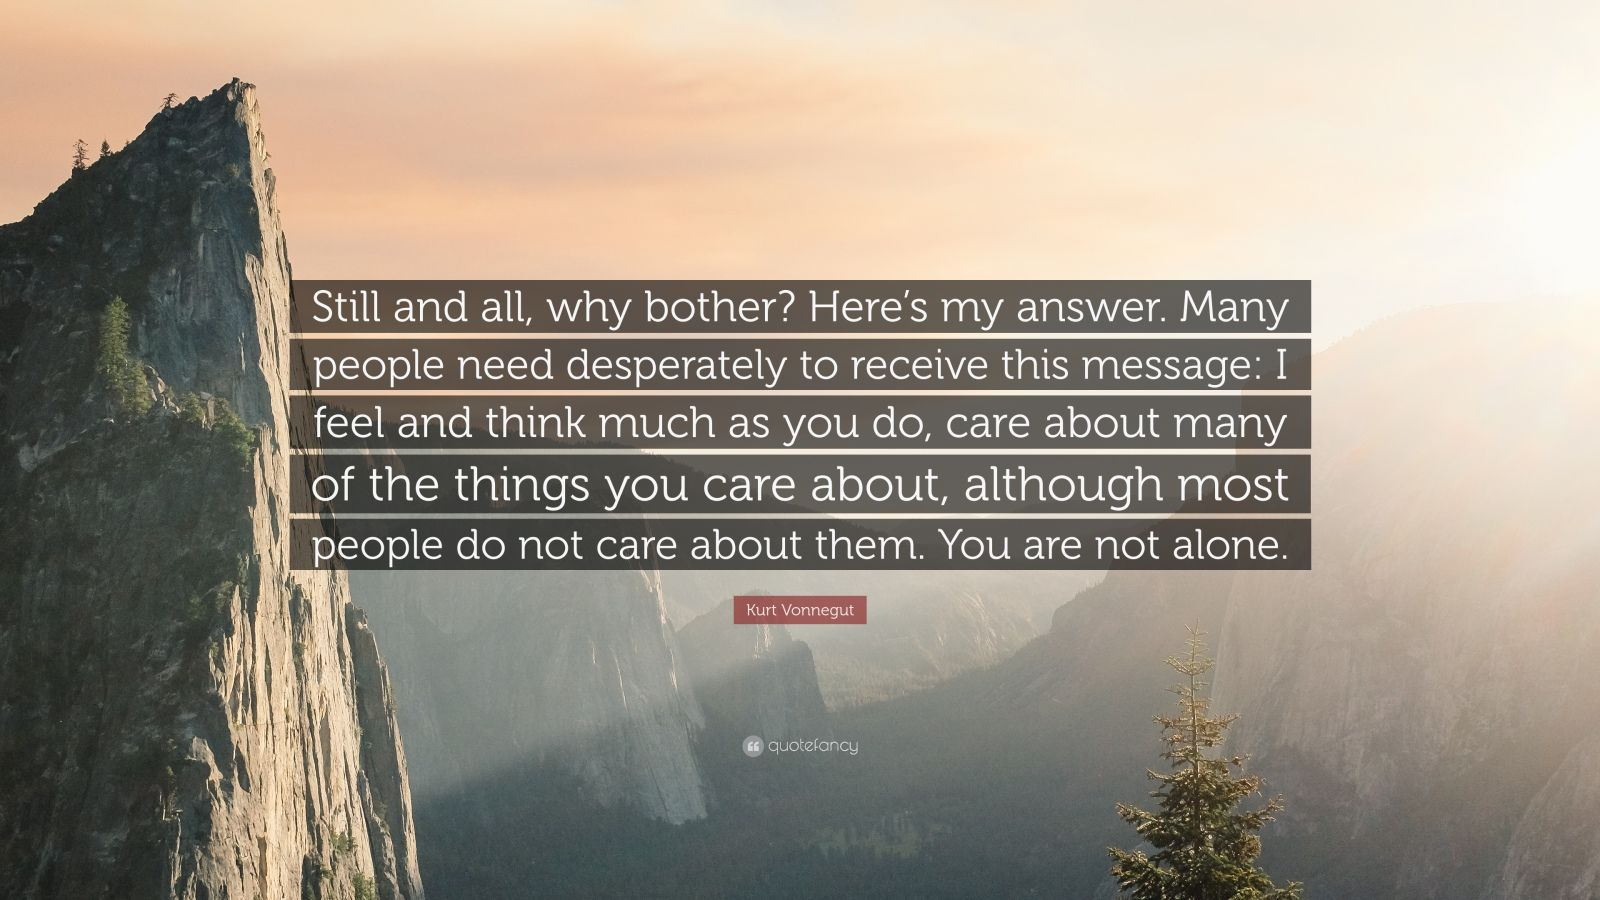 """Kurt Vonnegut Quote: """"Still and all, why bother? Here's my answer. Many people need desperately to receive this message: I feel and think much as you do, care about many of the things you care about, although most people do not care about them. You are not alone."""""""